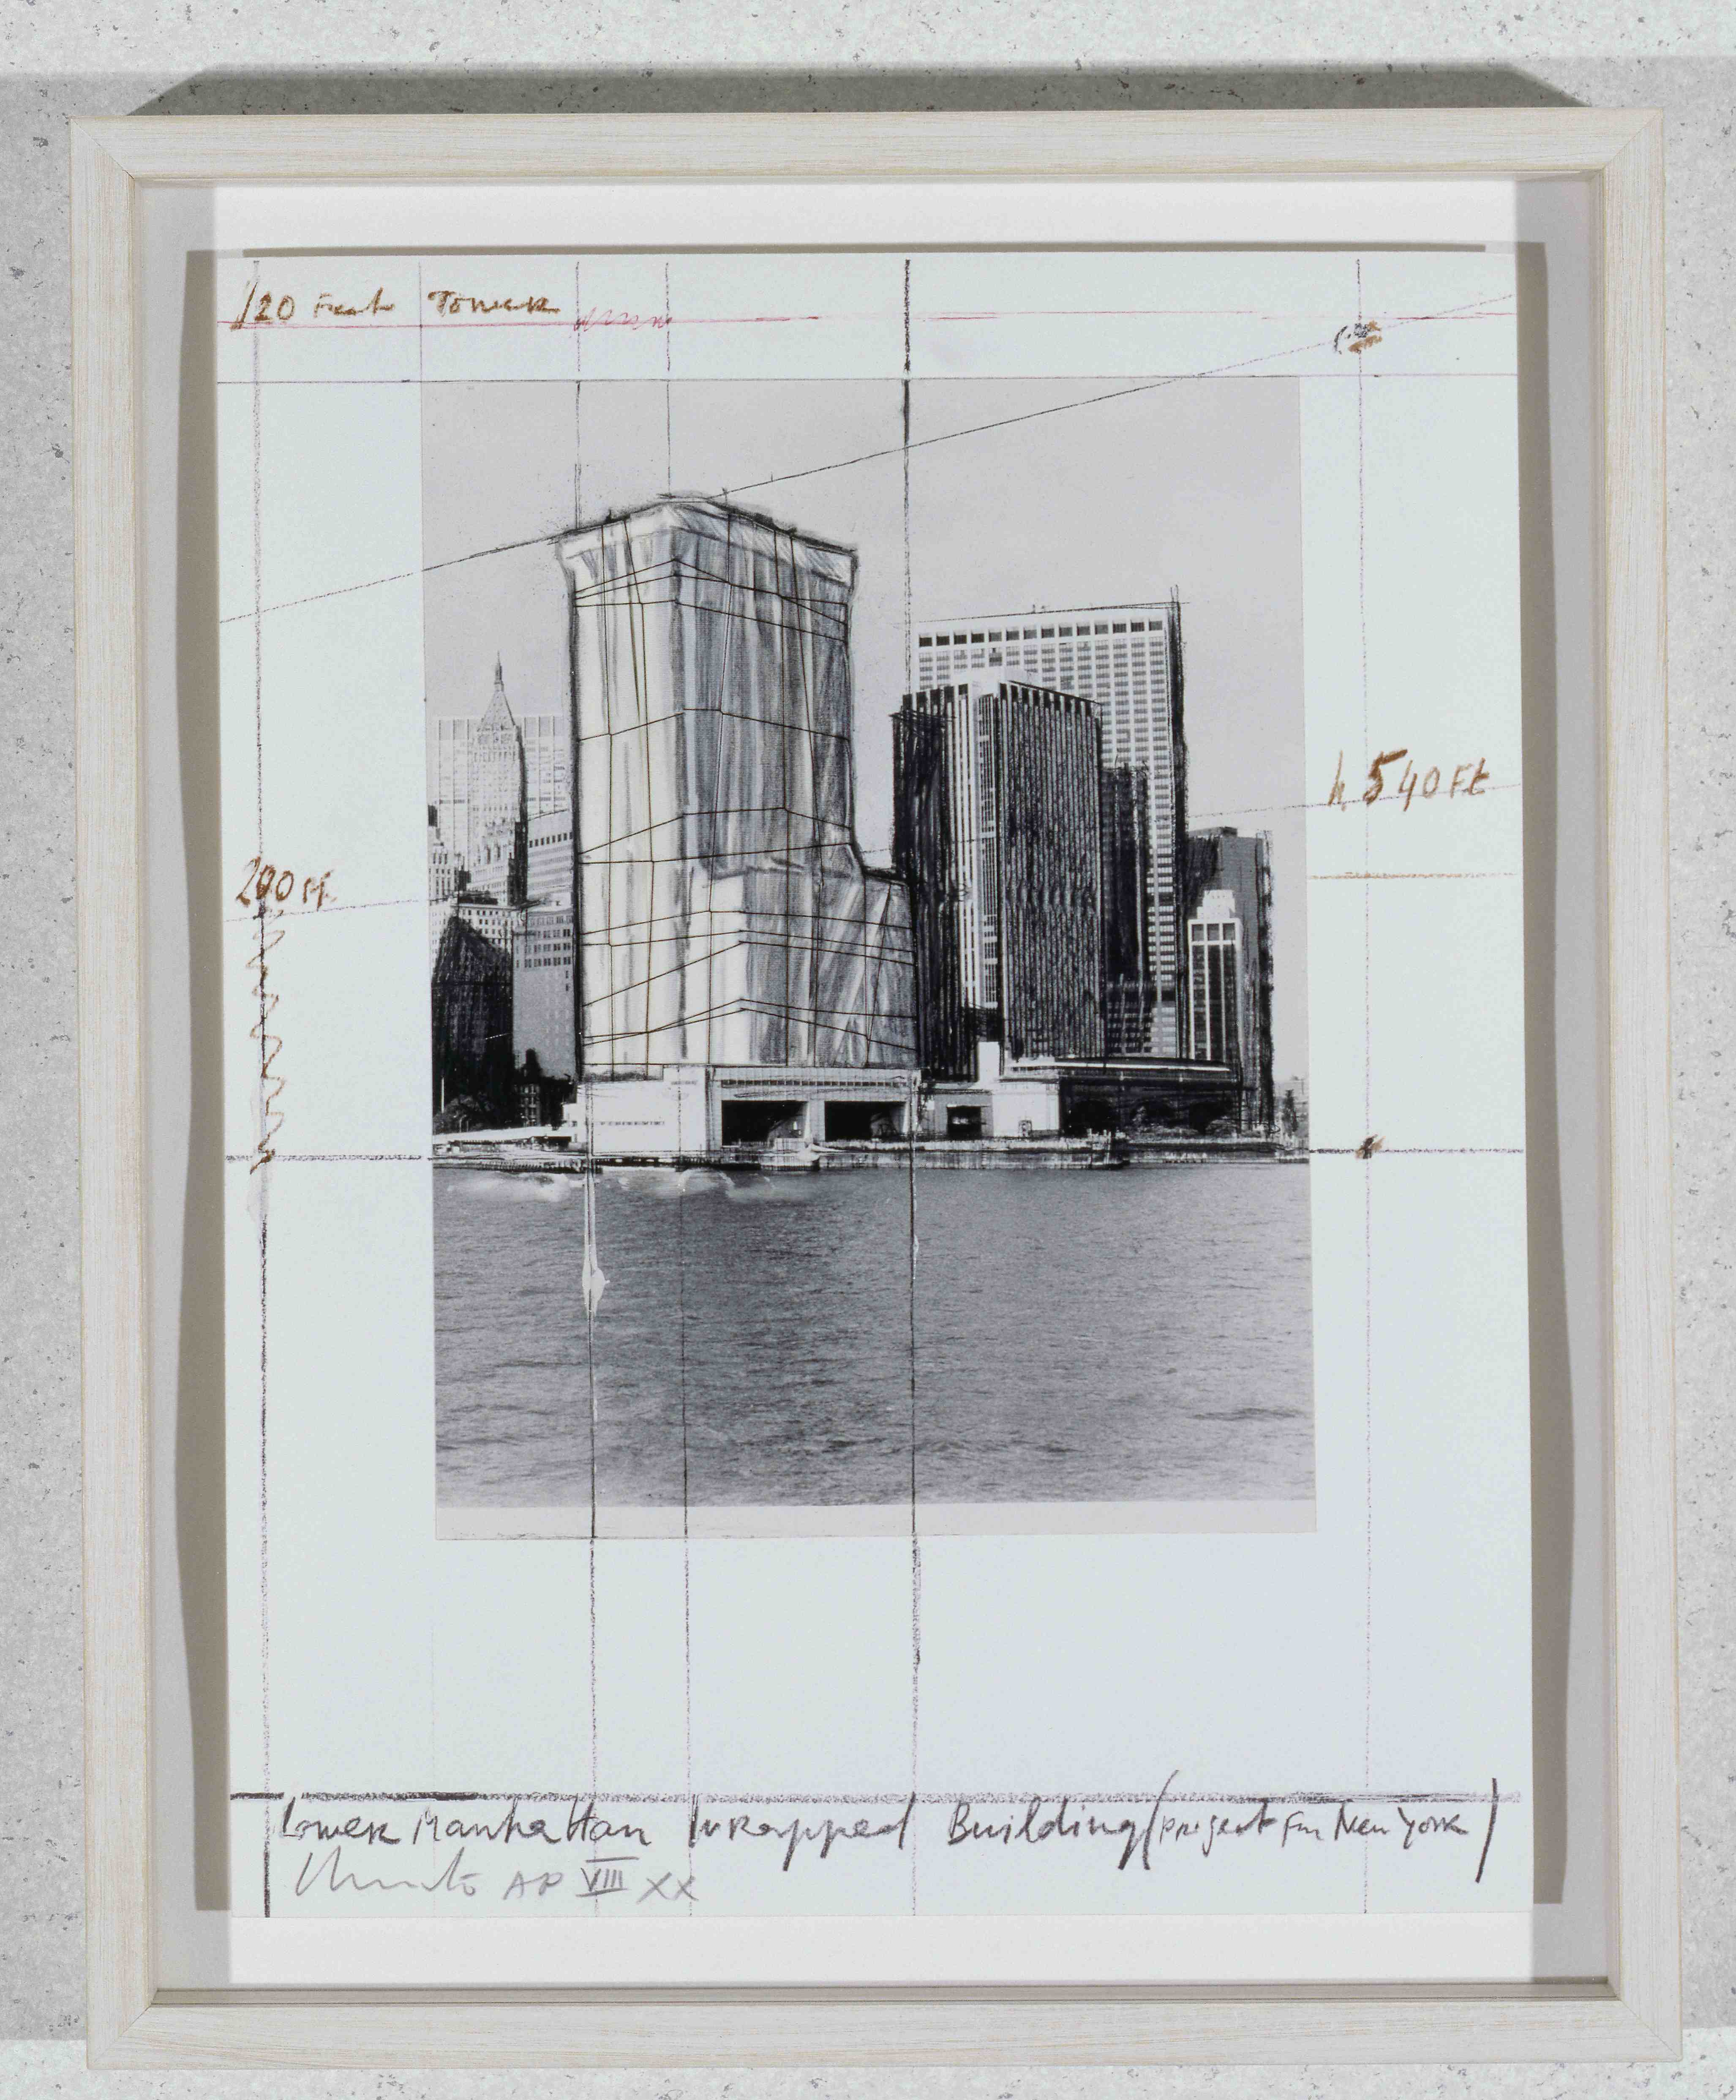 Christo - Lower Manhattan wrapped building - 1985 - Art Collection HypoVereinsbank - photo Jeanne-Claude Christo